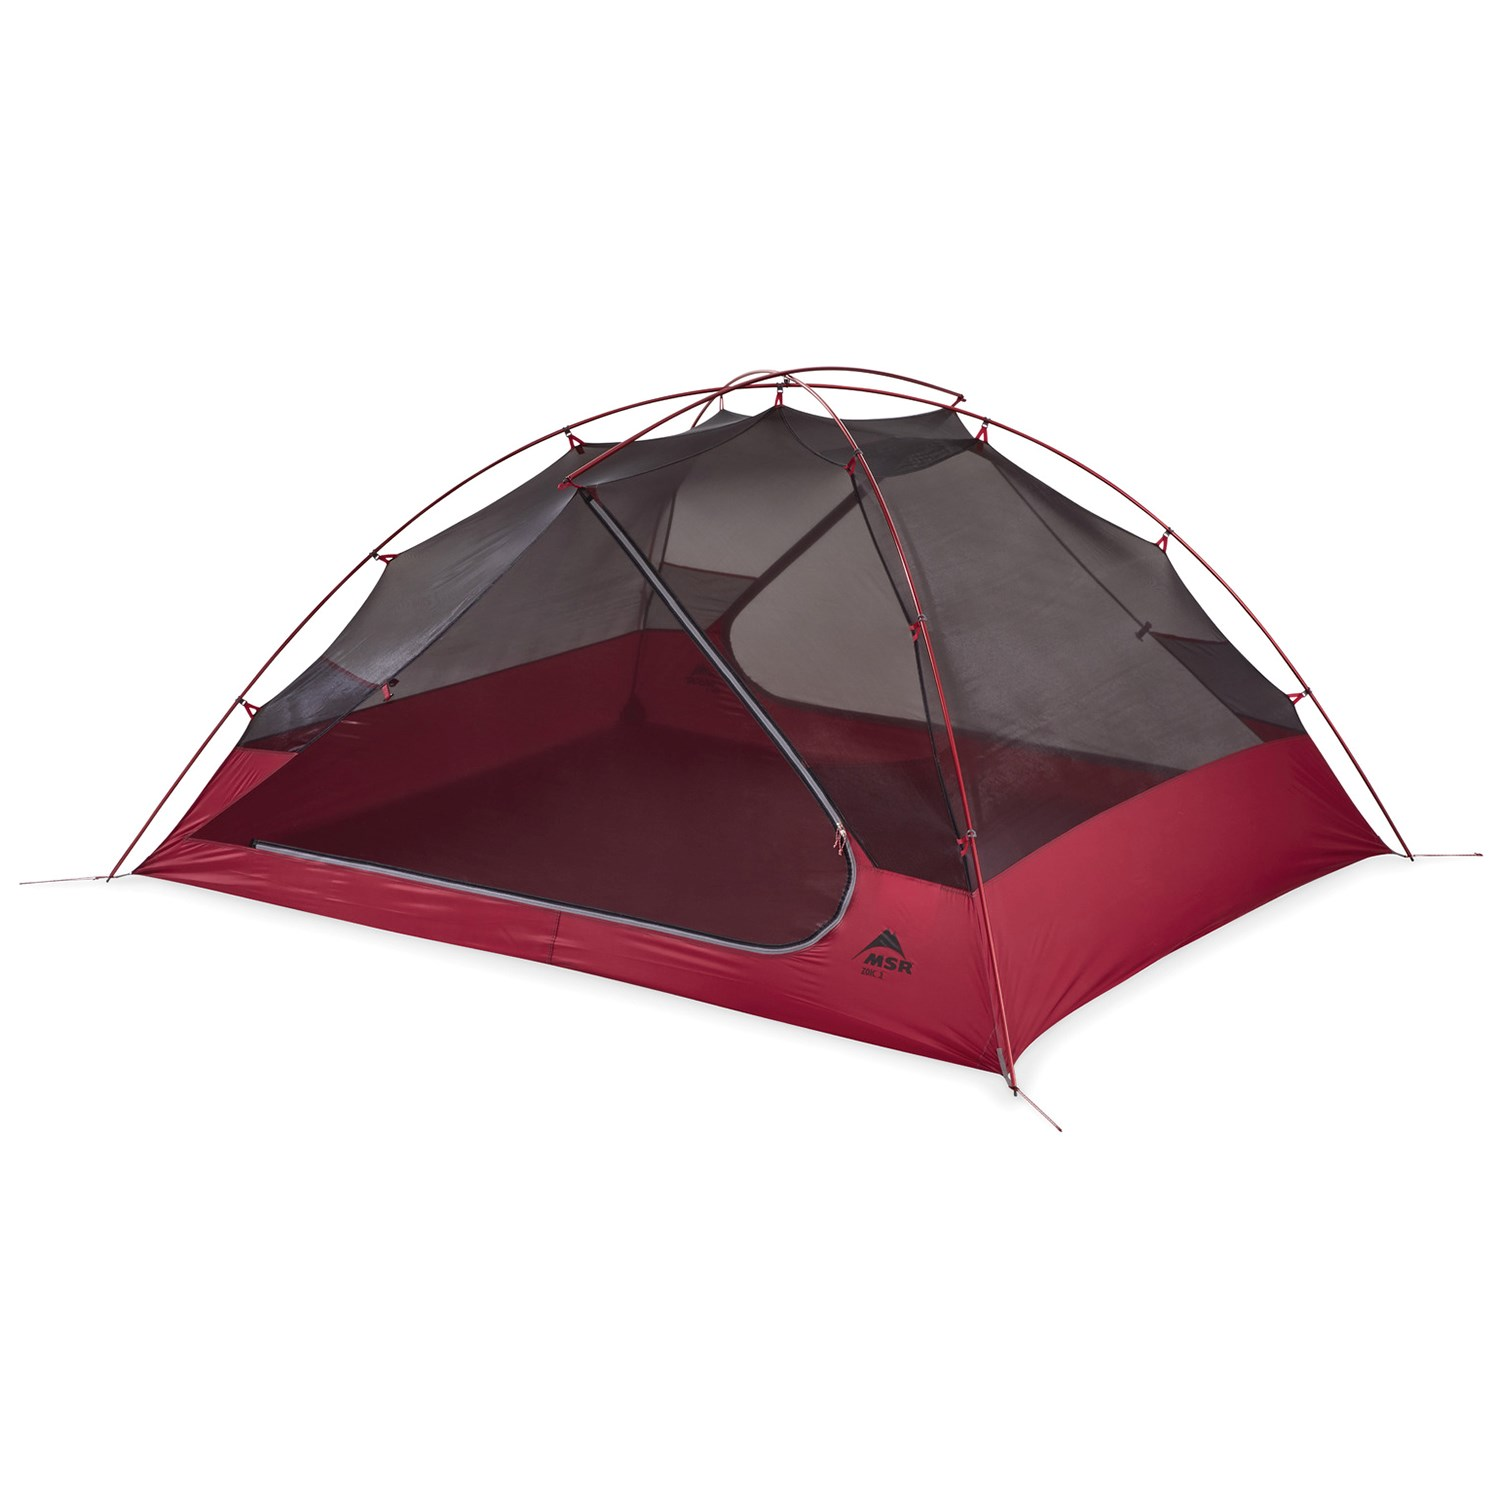 MSR Zoic 3 Tent 2021 in Red | Aluminum